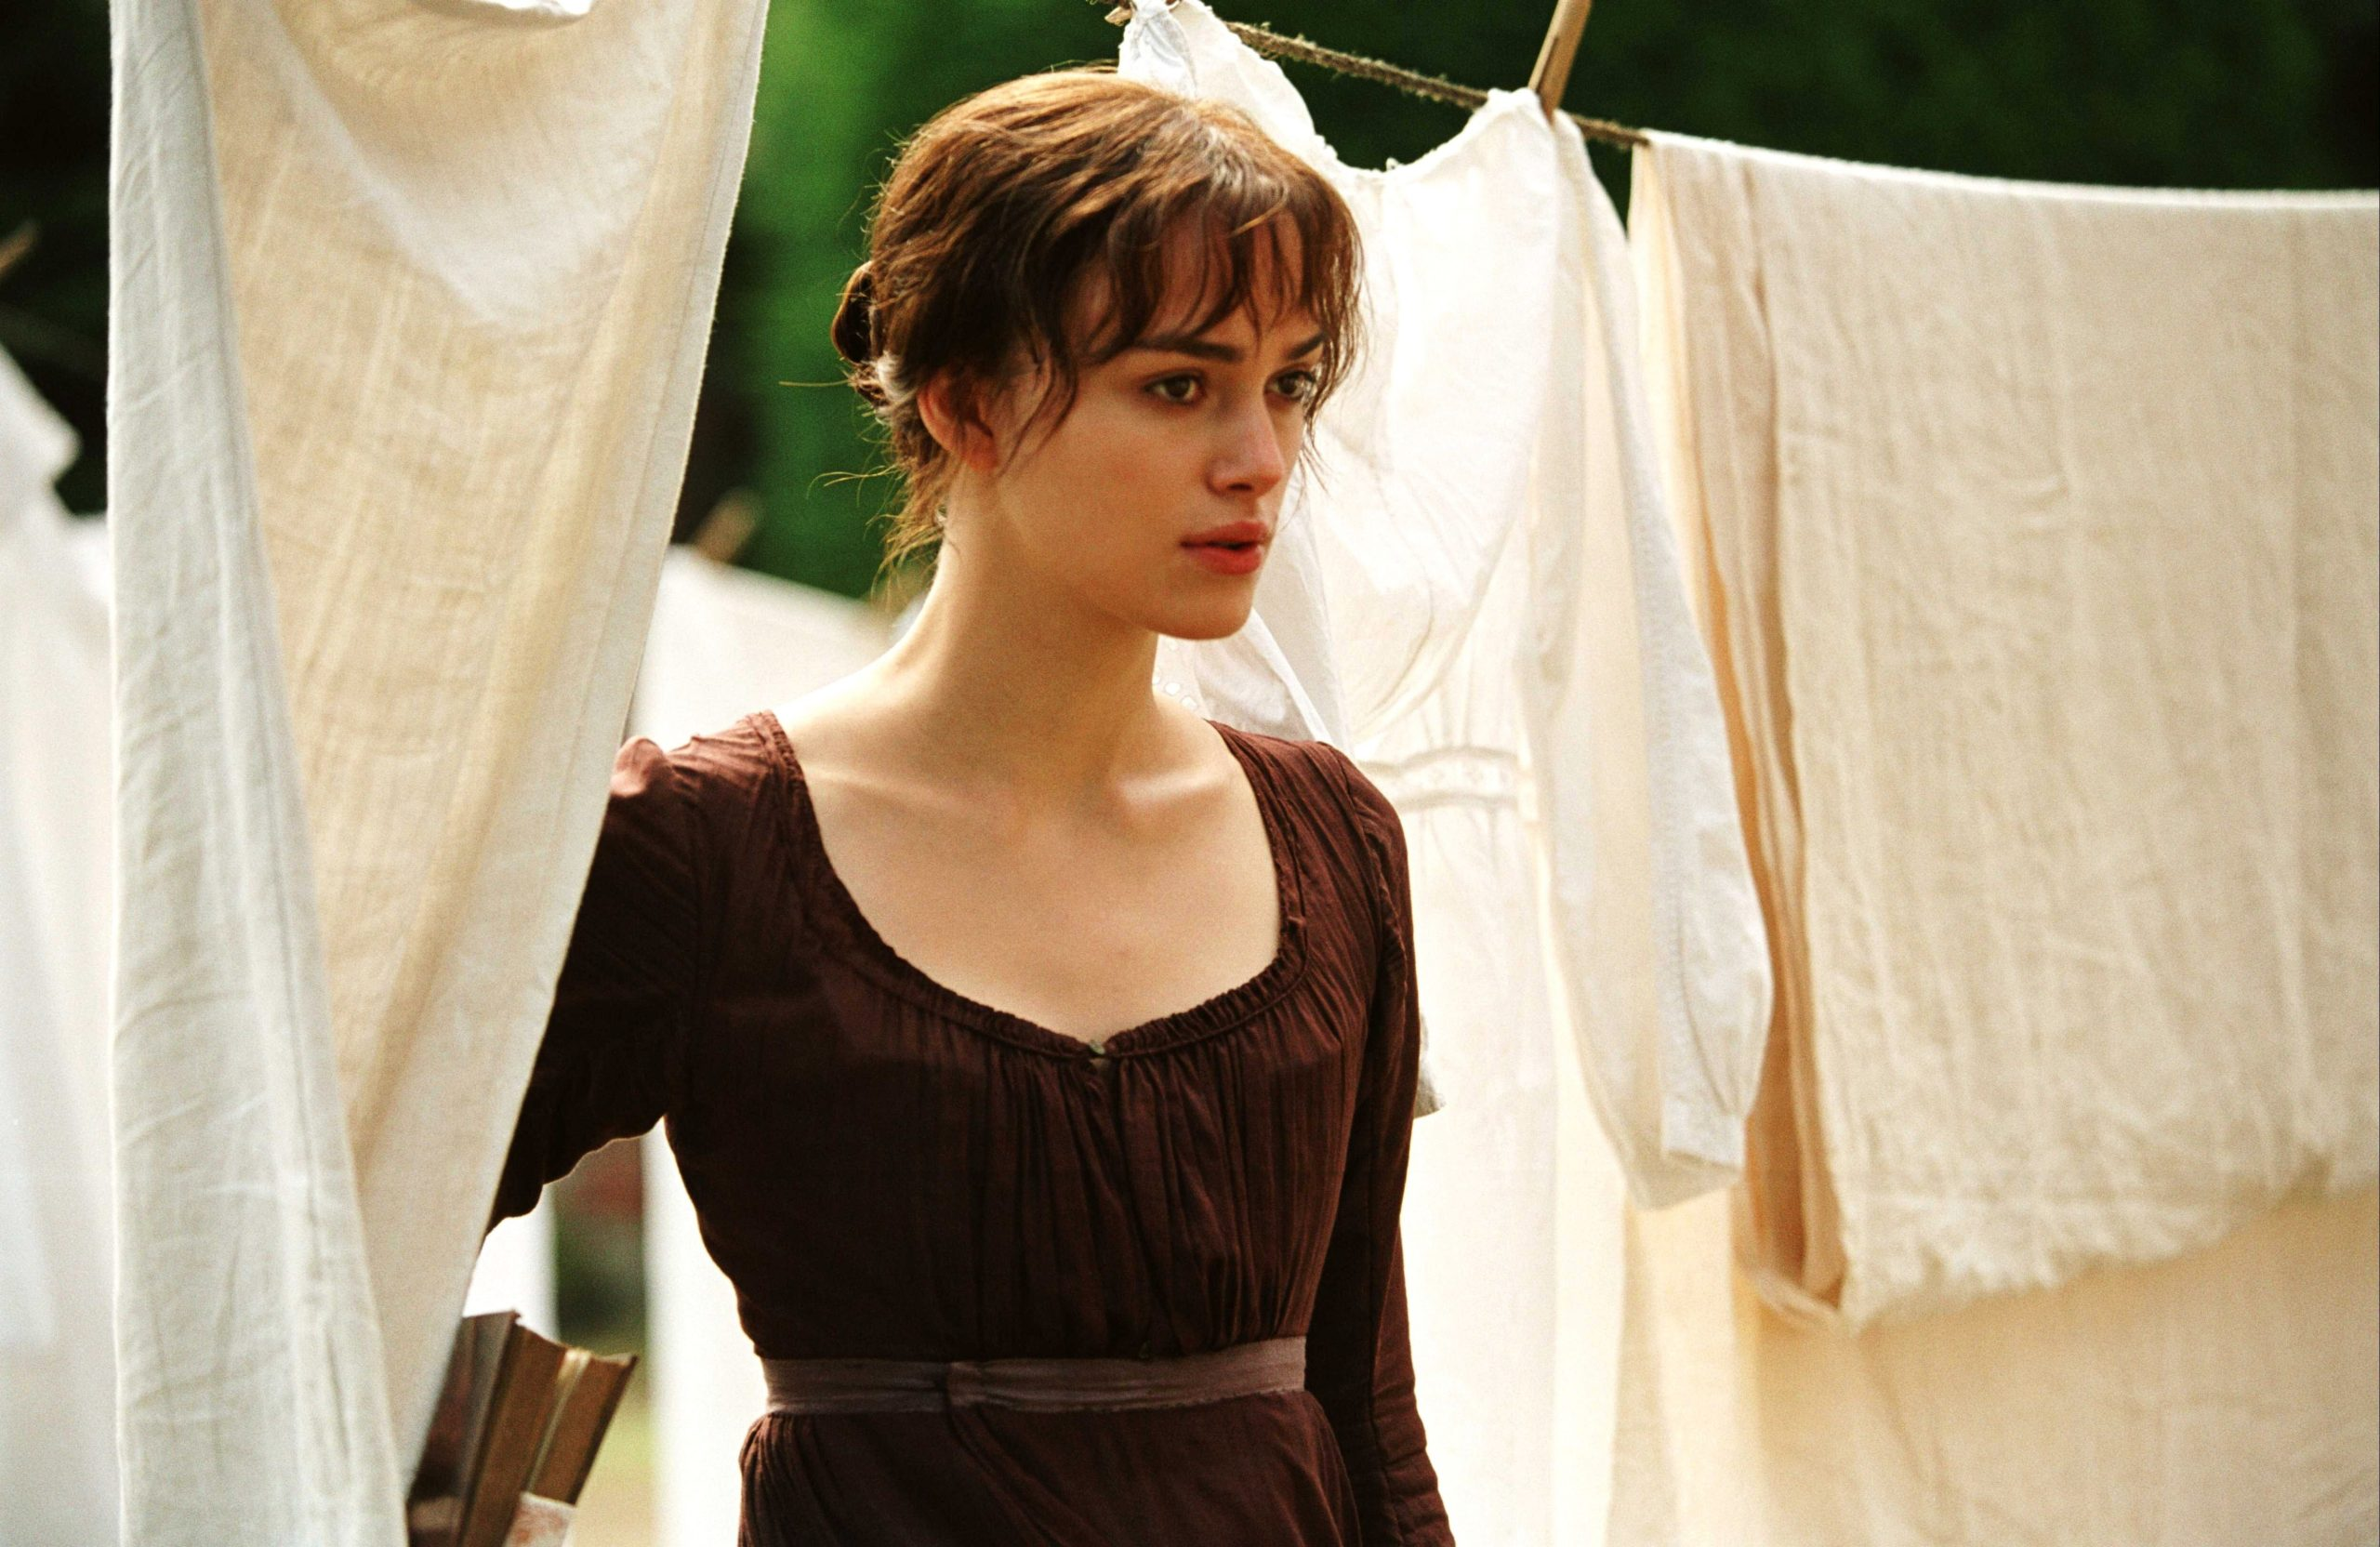 An image from Pride and Prejudice showing Elizabeth standing surrounded by laundry